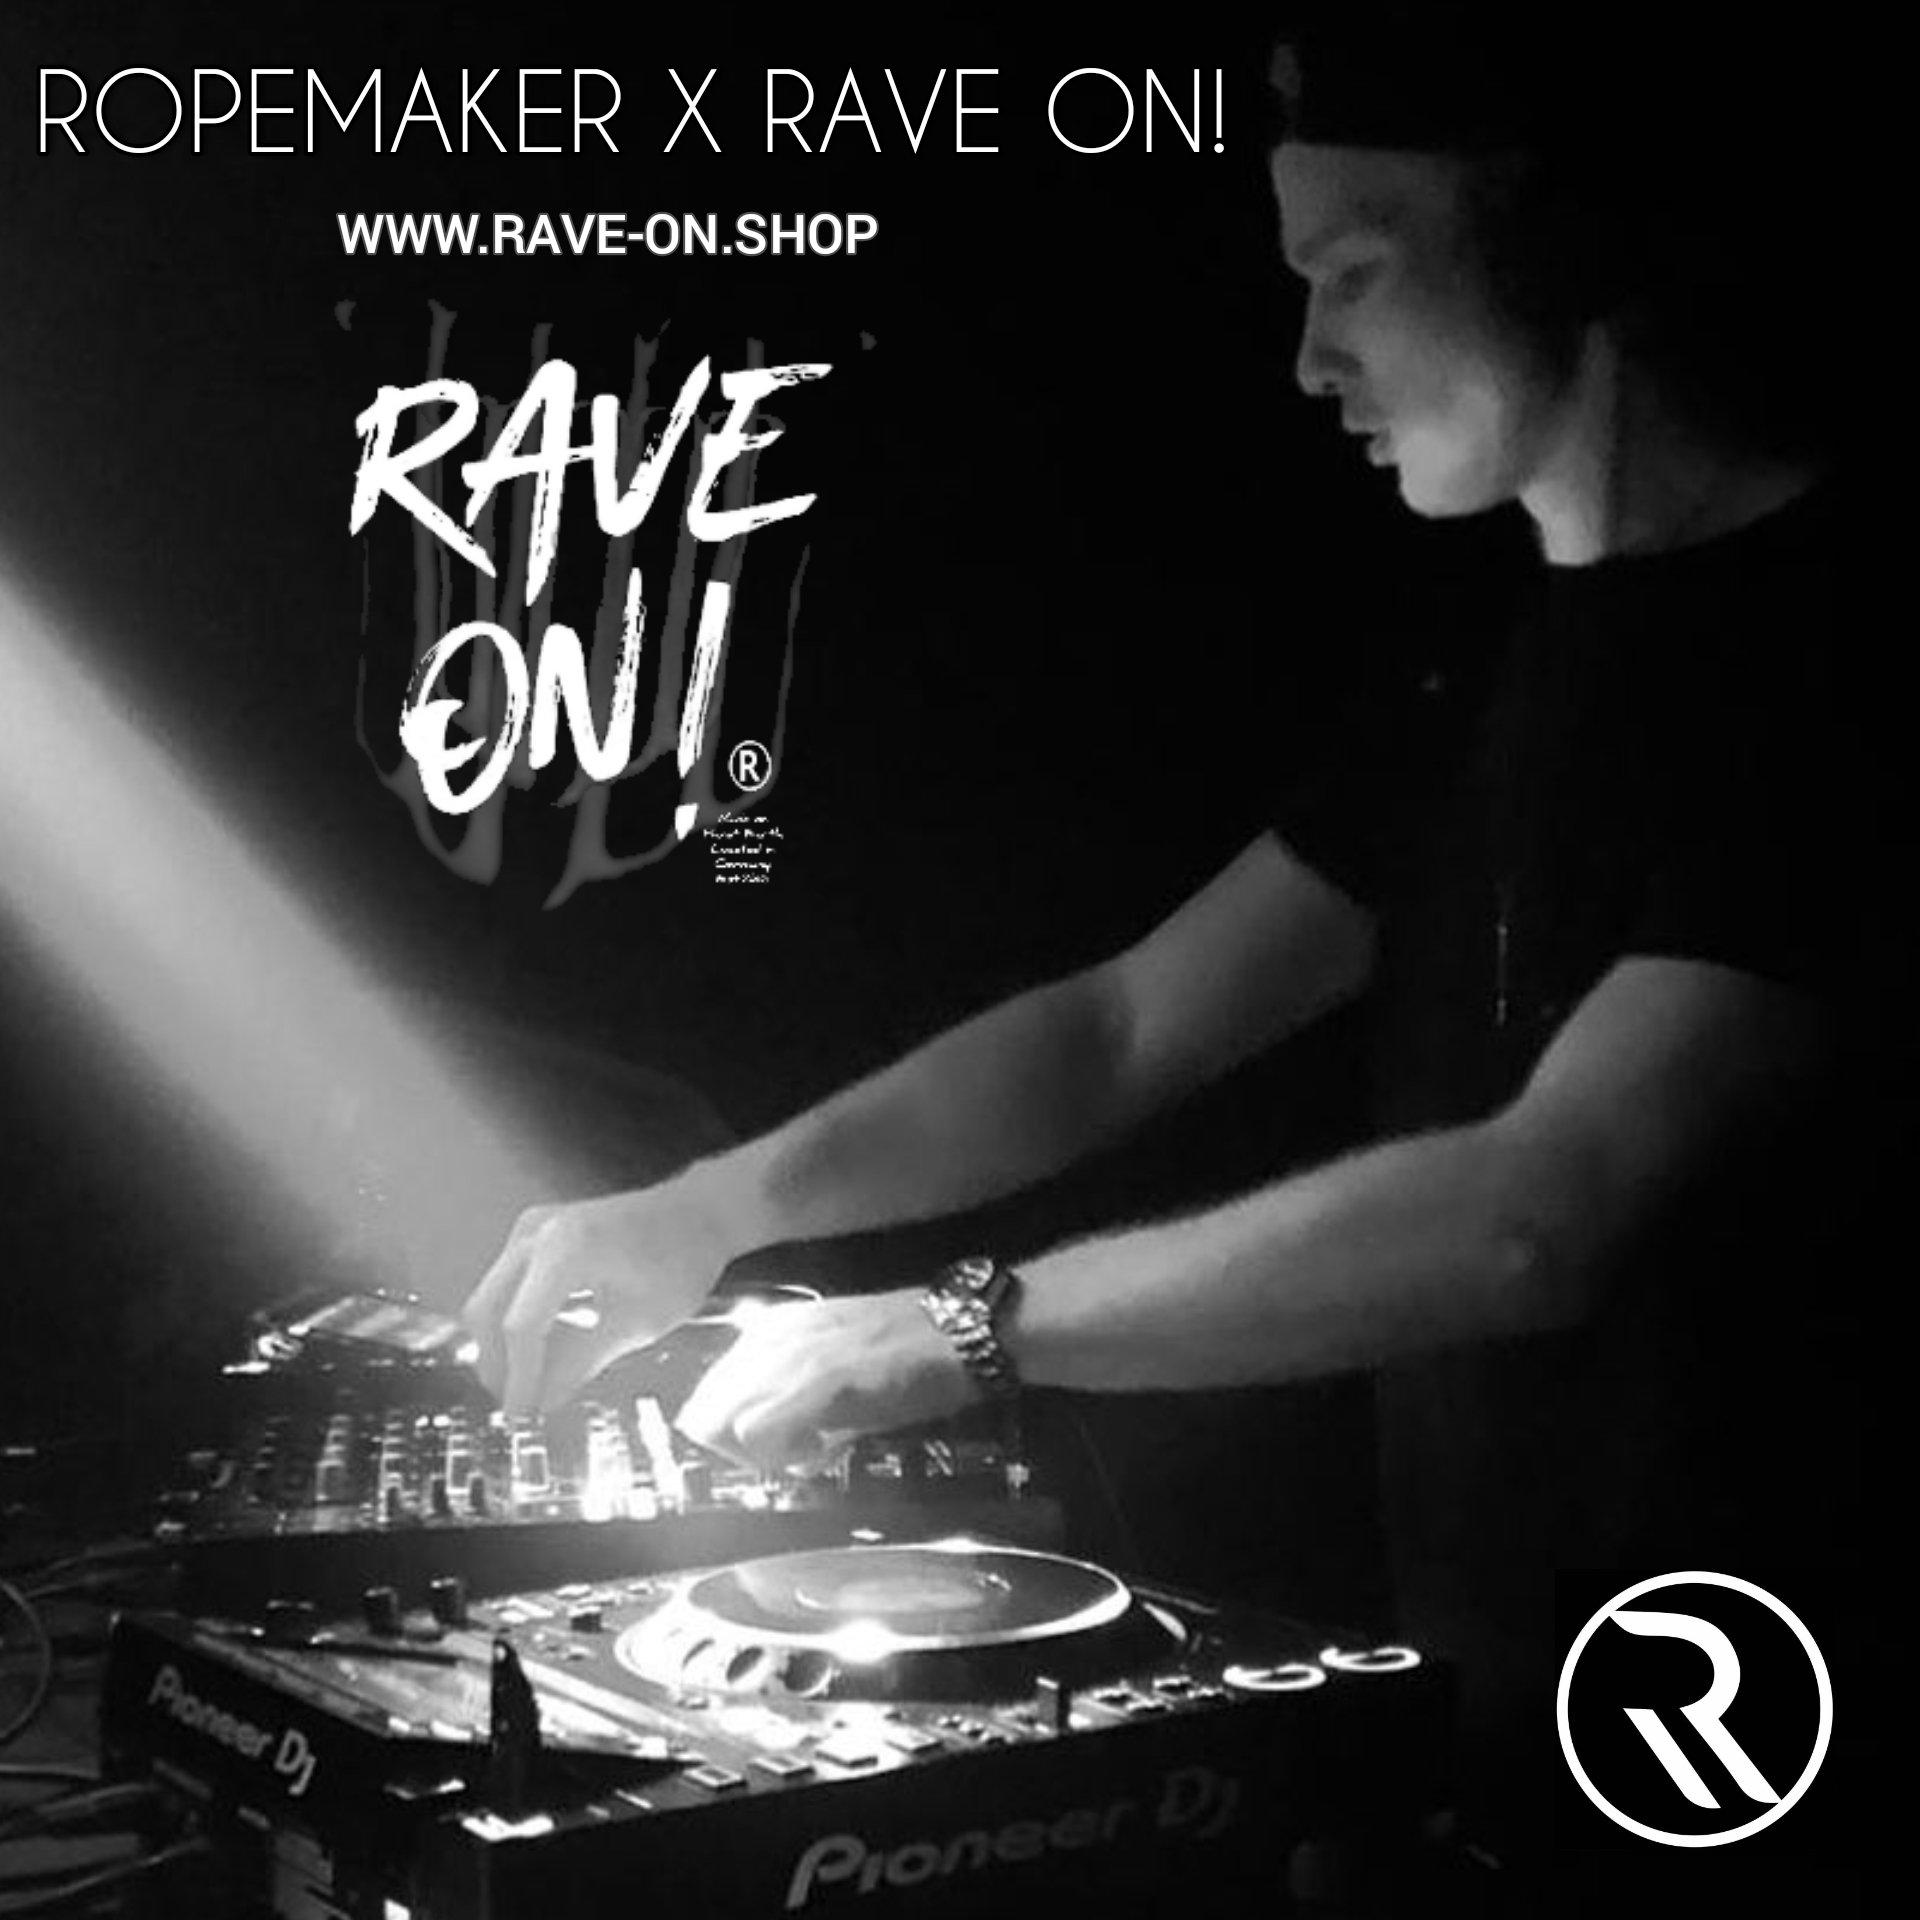 ROPEMAKER RAVE-ON!®️ WHITE T-SHIRT - Herren Premium Organic Shirt Creator T-Shirt ST/ST - Rave On!® der Club & Techno Szene Shop für Coole Junge Mode Streetwear Style & Fashion Outfits + Sexy Festival 420 Stuff